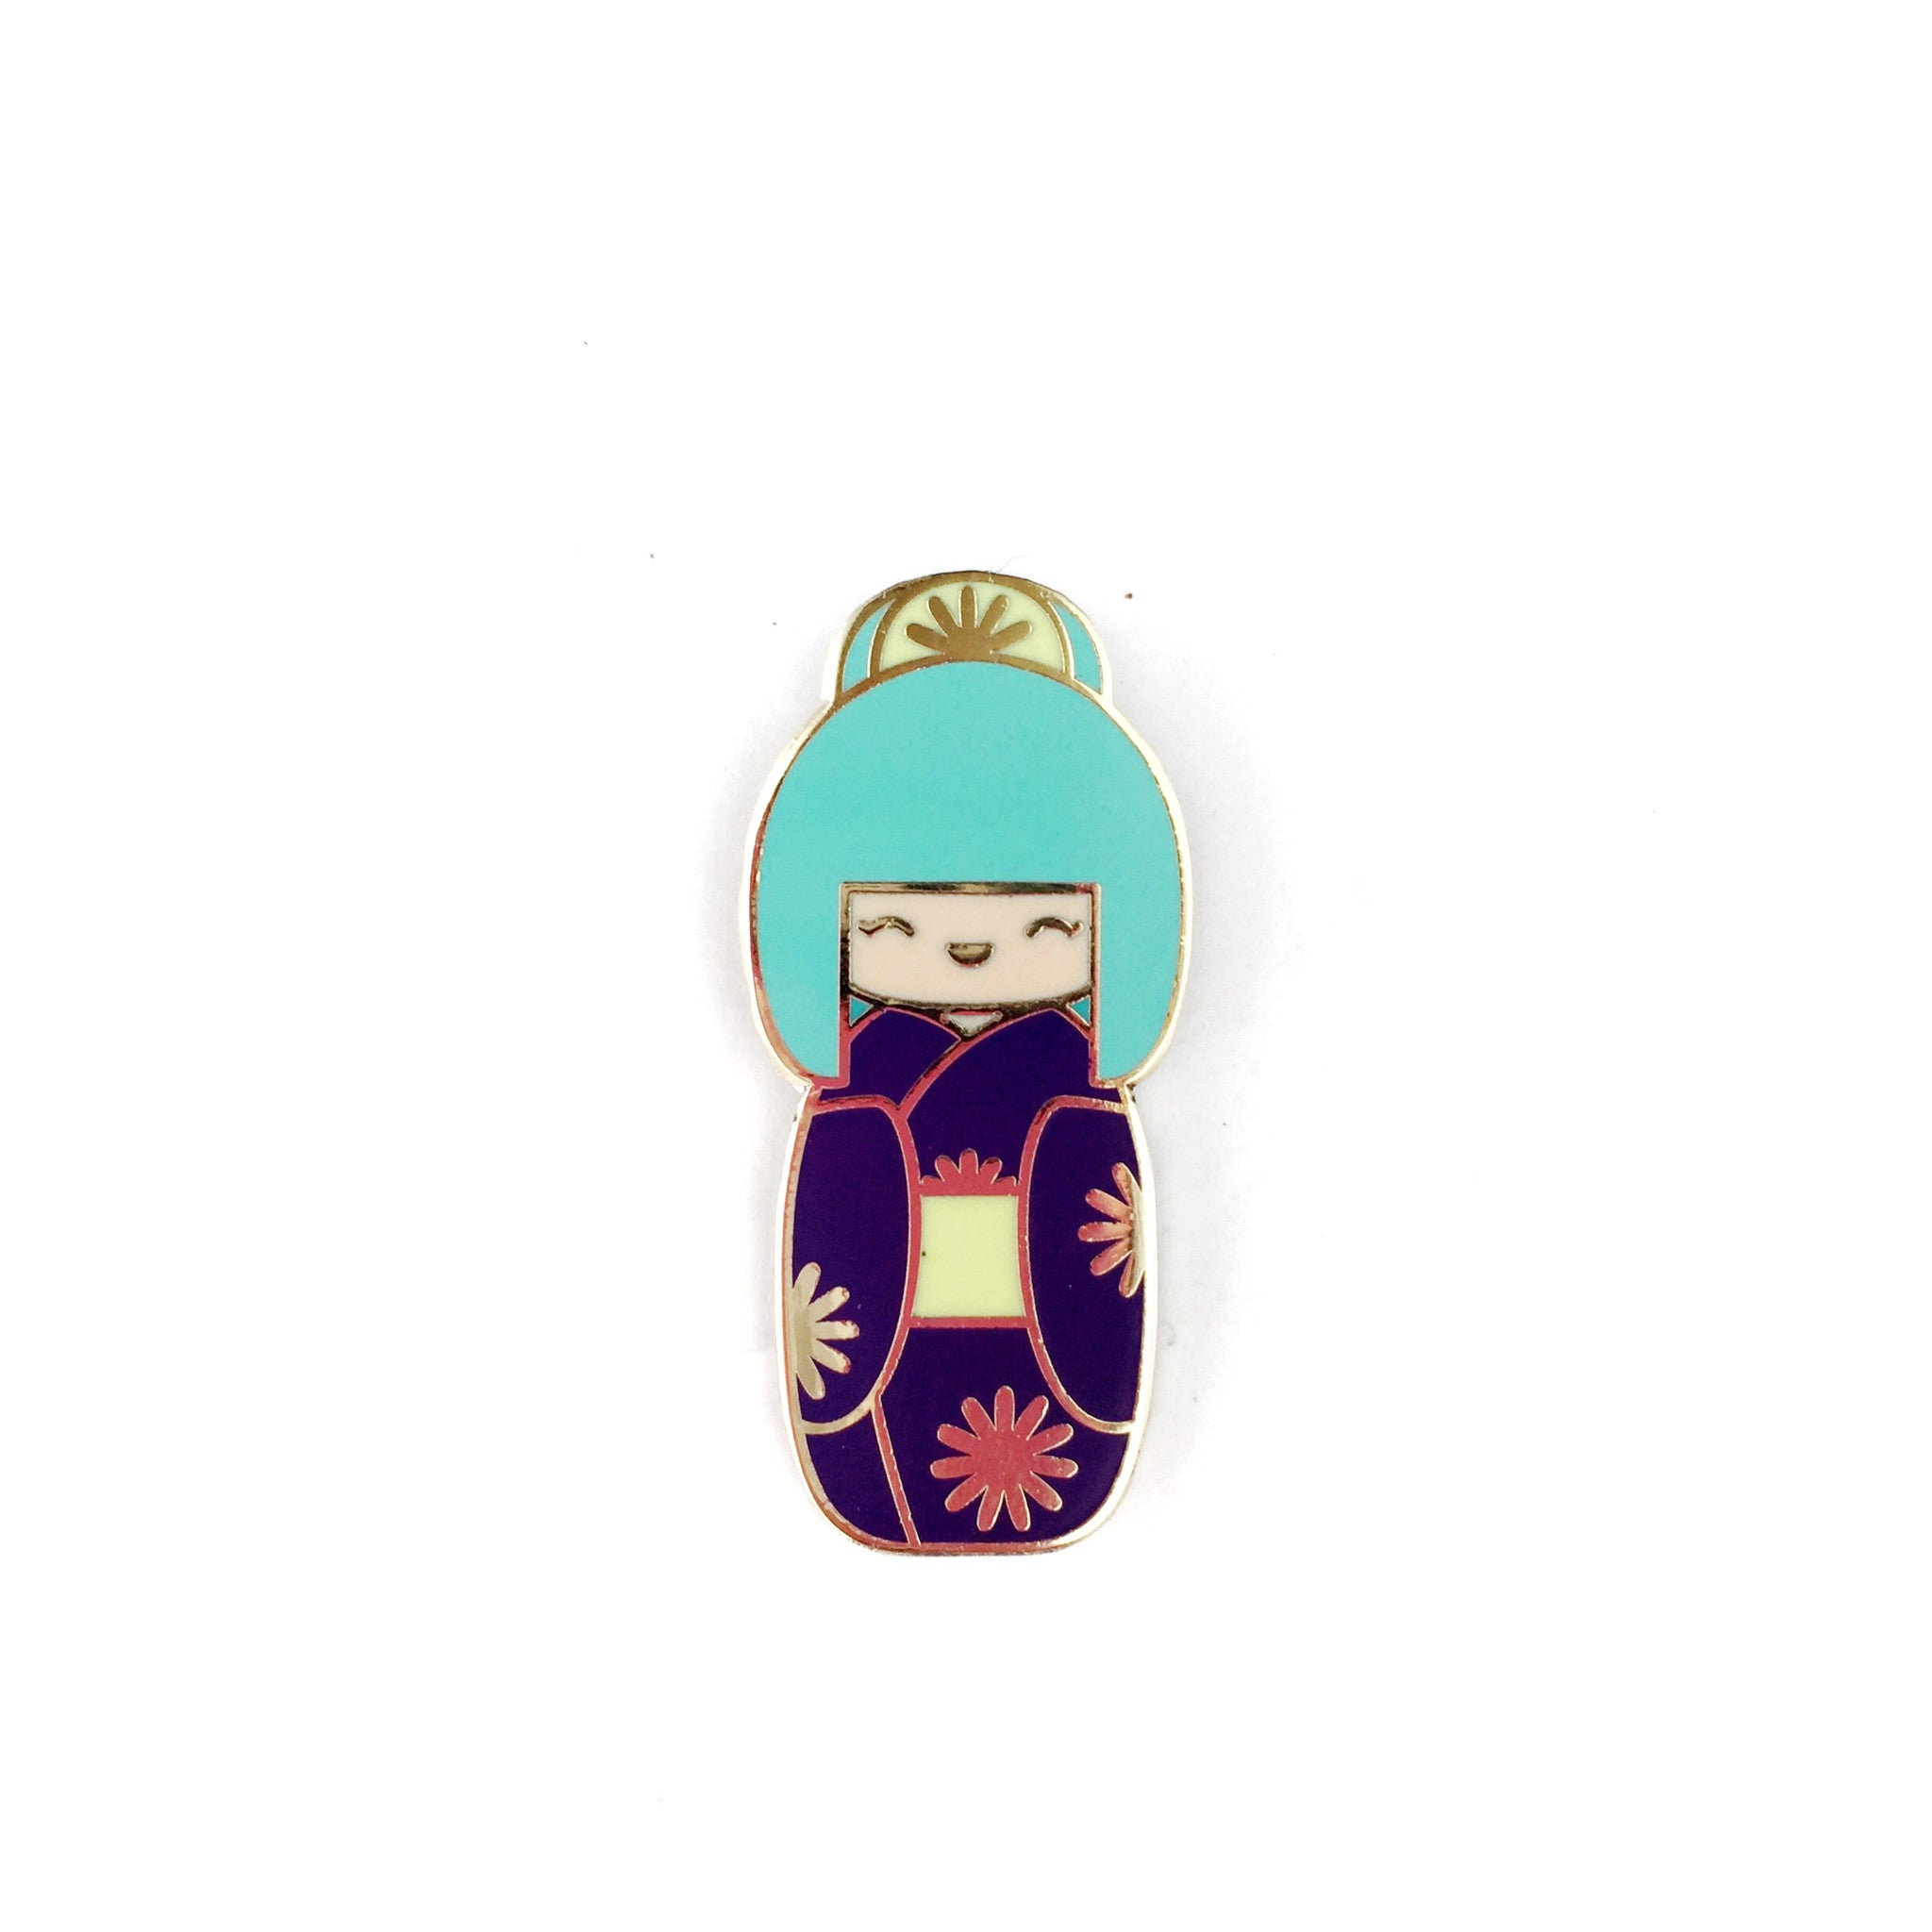 Kokeshi Doll Enamel Pin • Traditional Teal Bun - Enamel Pin - The Pink Samurai